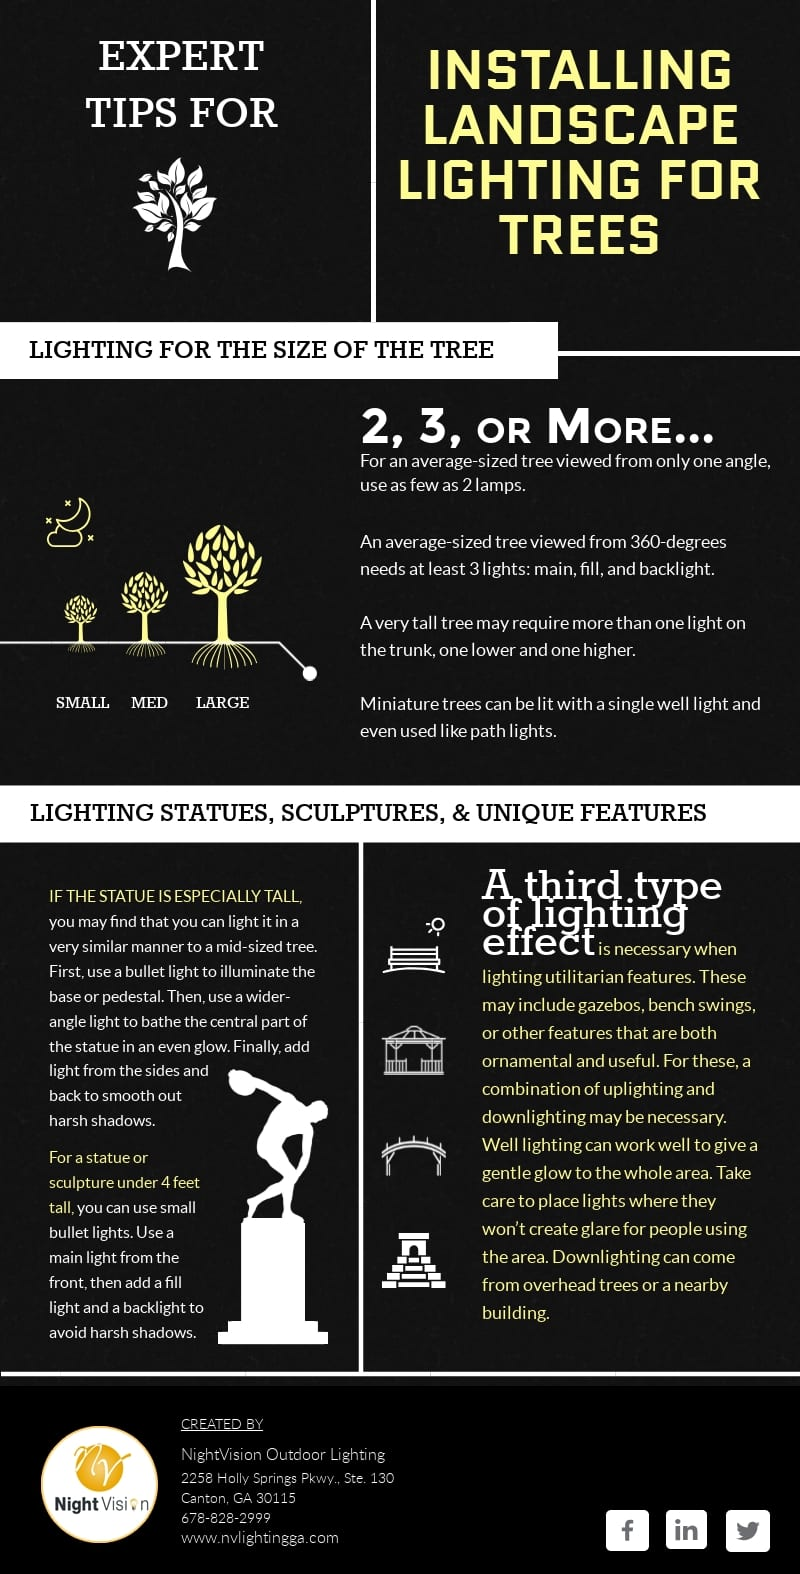 expert tips for installing landscape lighting for trees why to